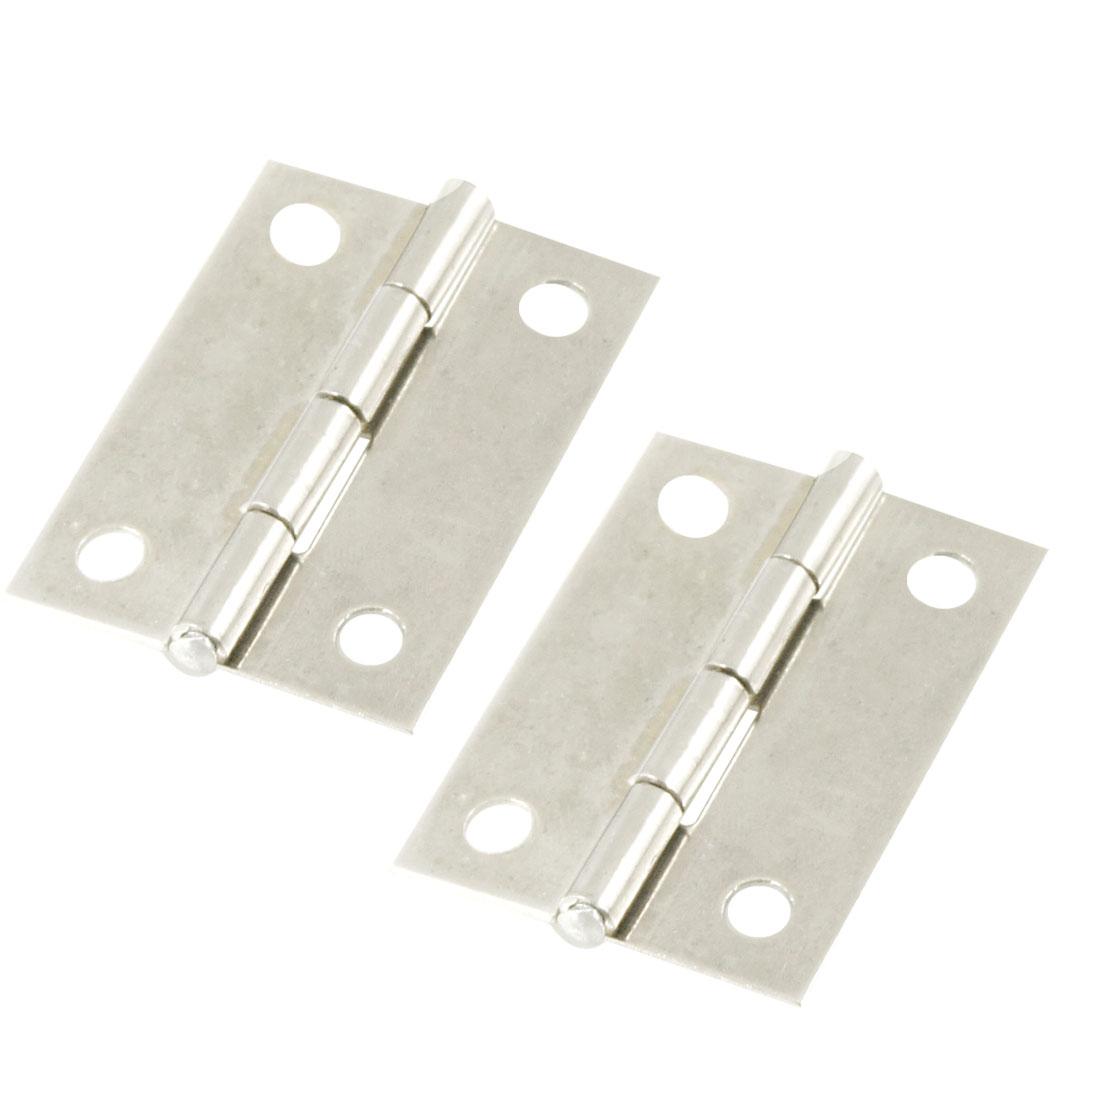 2 Pcs Silver Tone Stainless Steel Cabinet Door Butt Hinges 1.5""